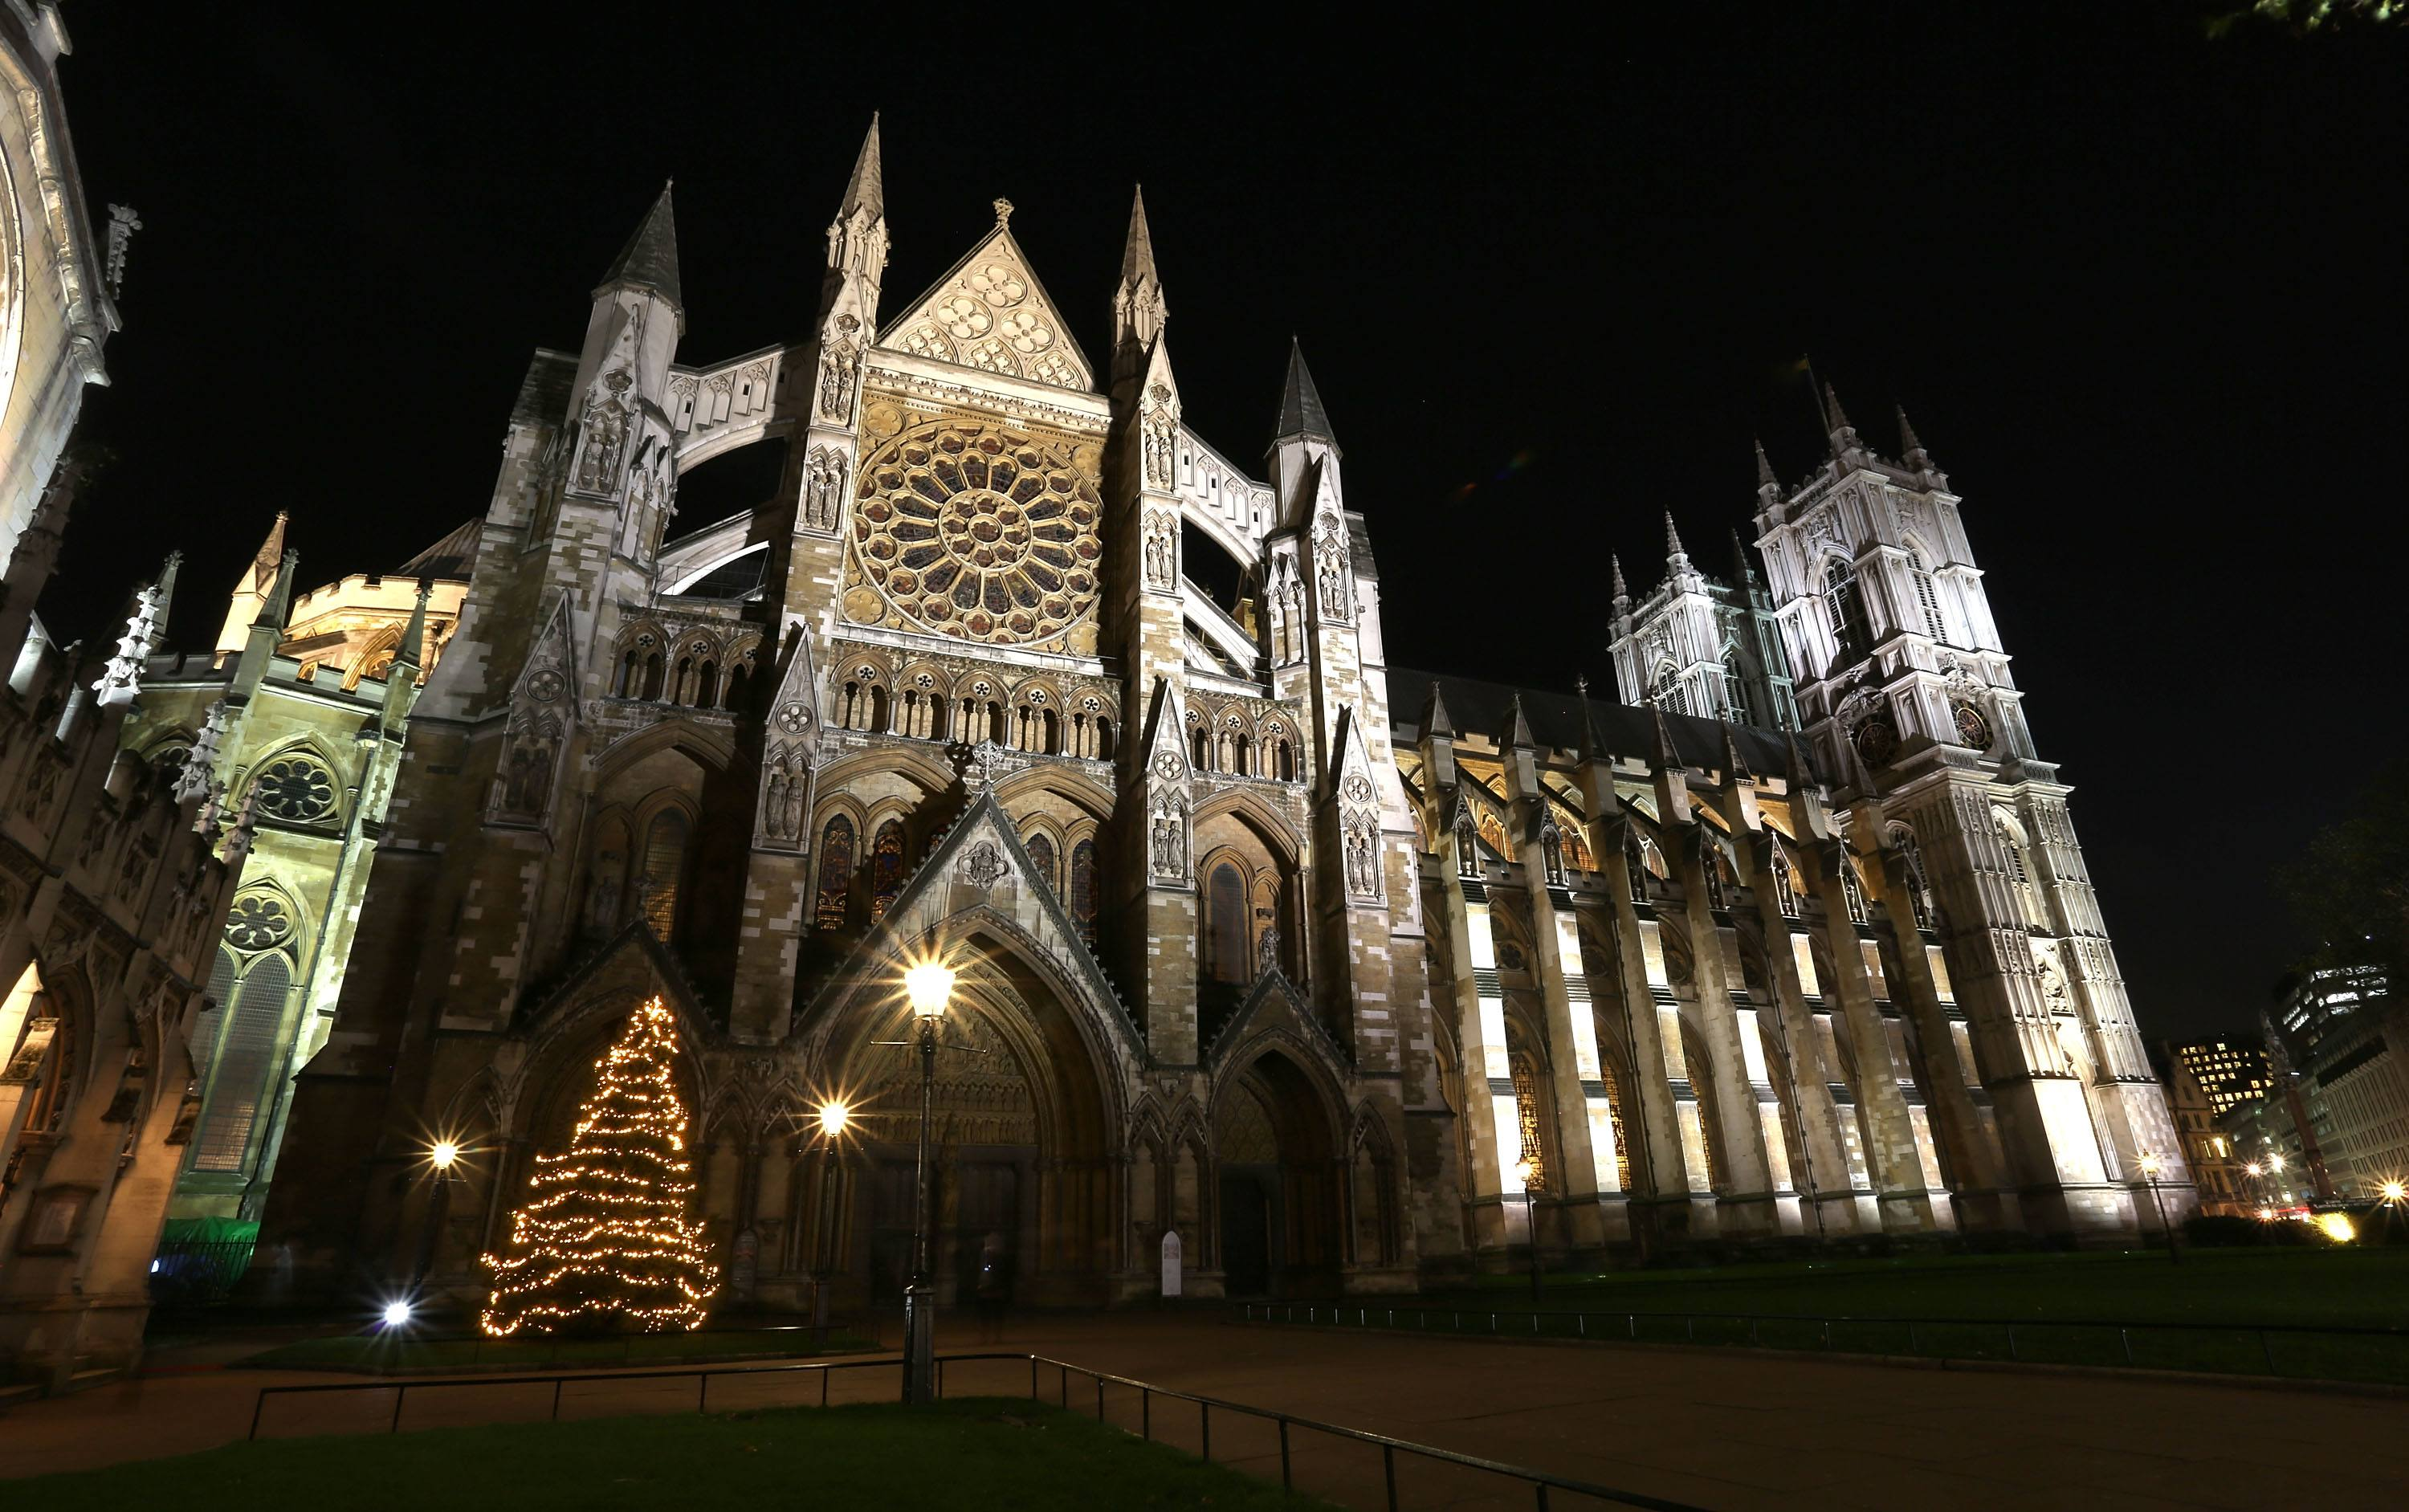 The Christmas Tree which was blessed and switched on by The Very Reverend Dr John Hall at Westminster Abbey on December 4, 2012 in London, England.